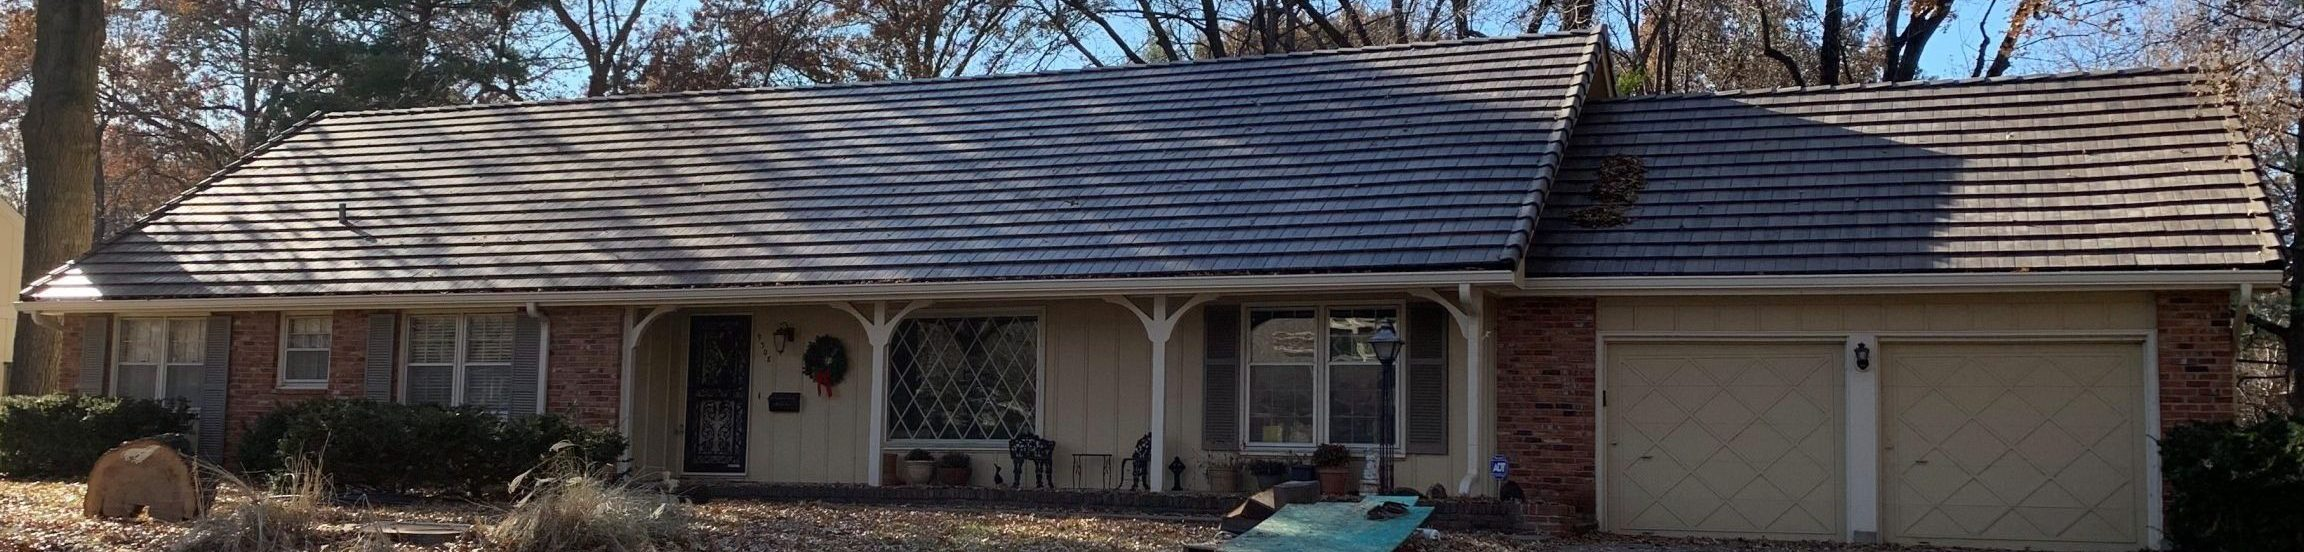 Residential roof replacement on a Kansas City house by Buck Roofing